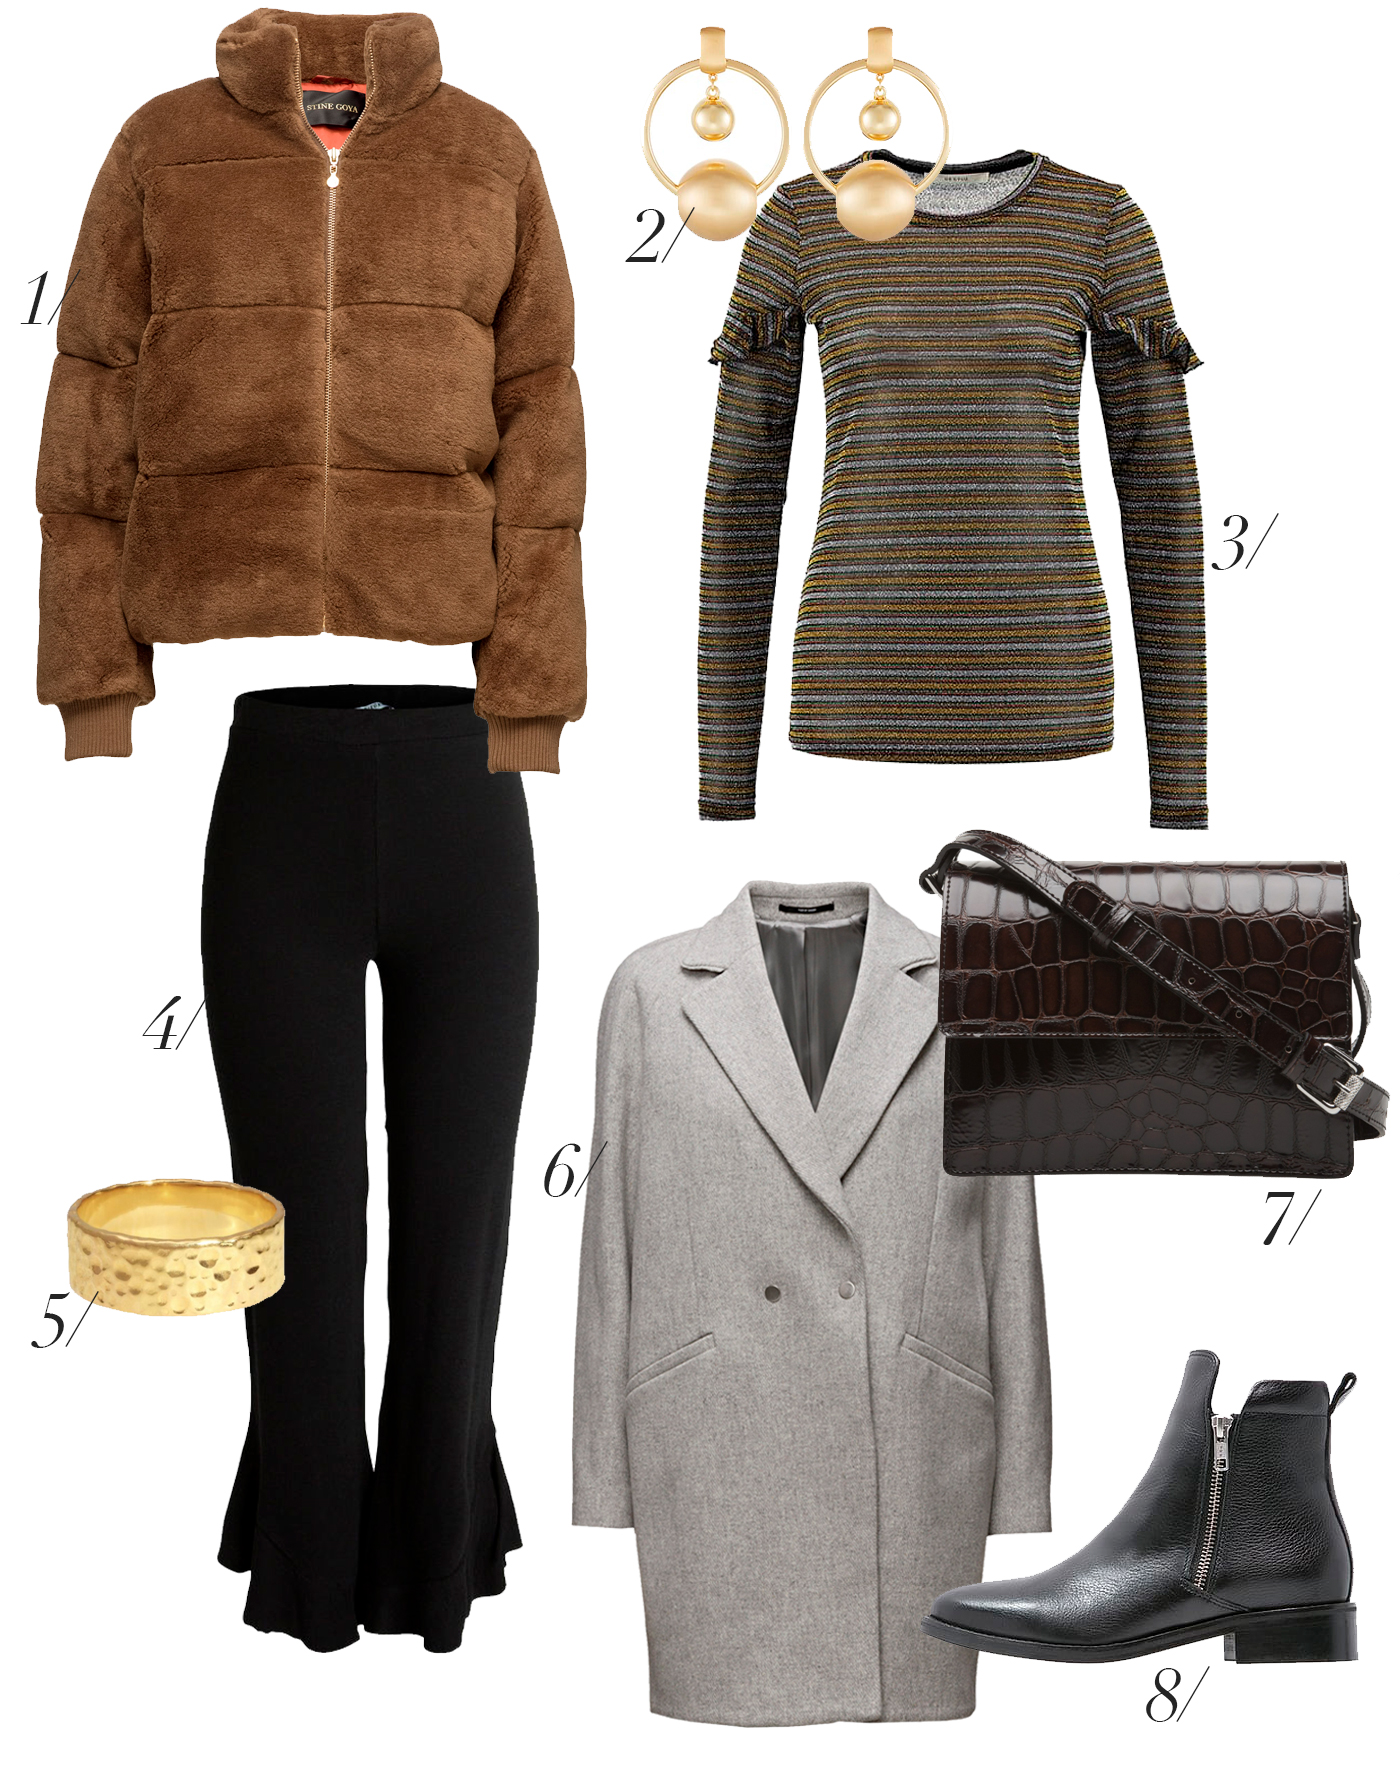 blog-outfit